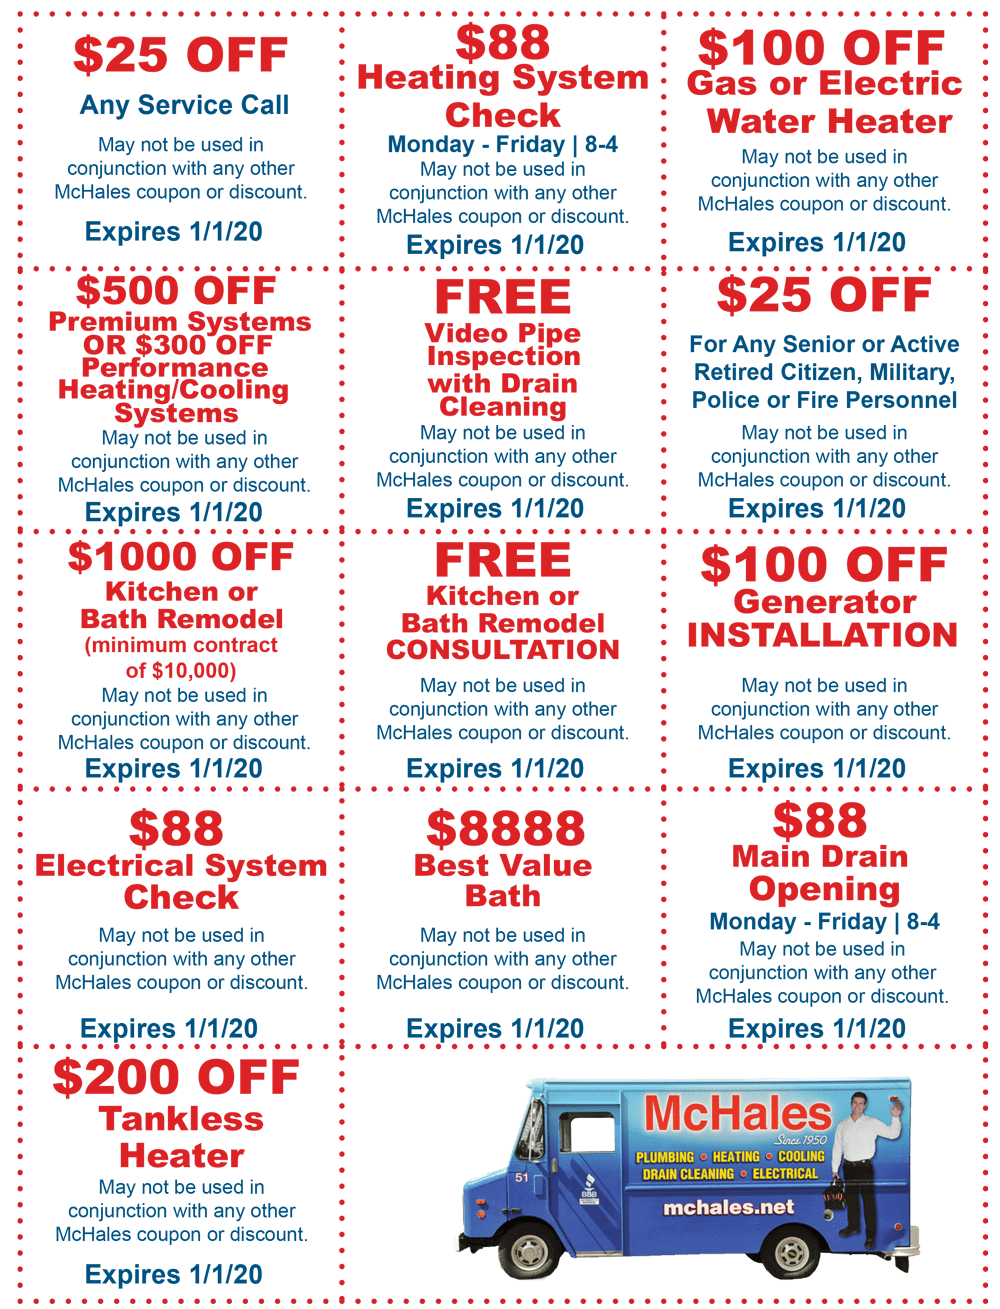 McHale's Plumbing, Heating and Cooling - Deals